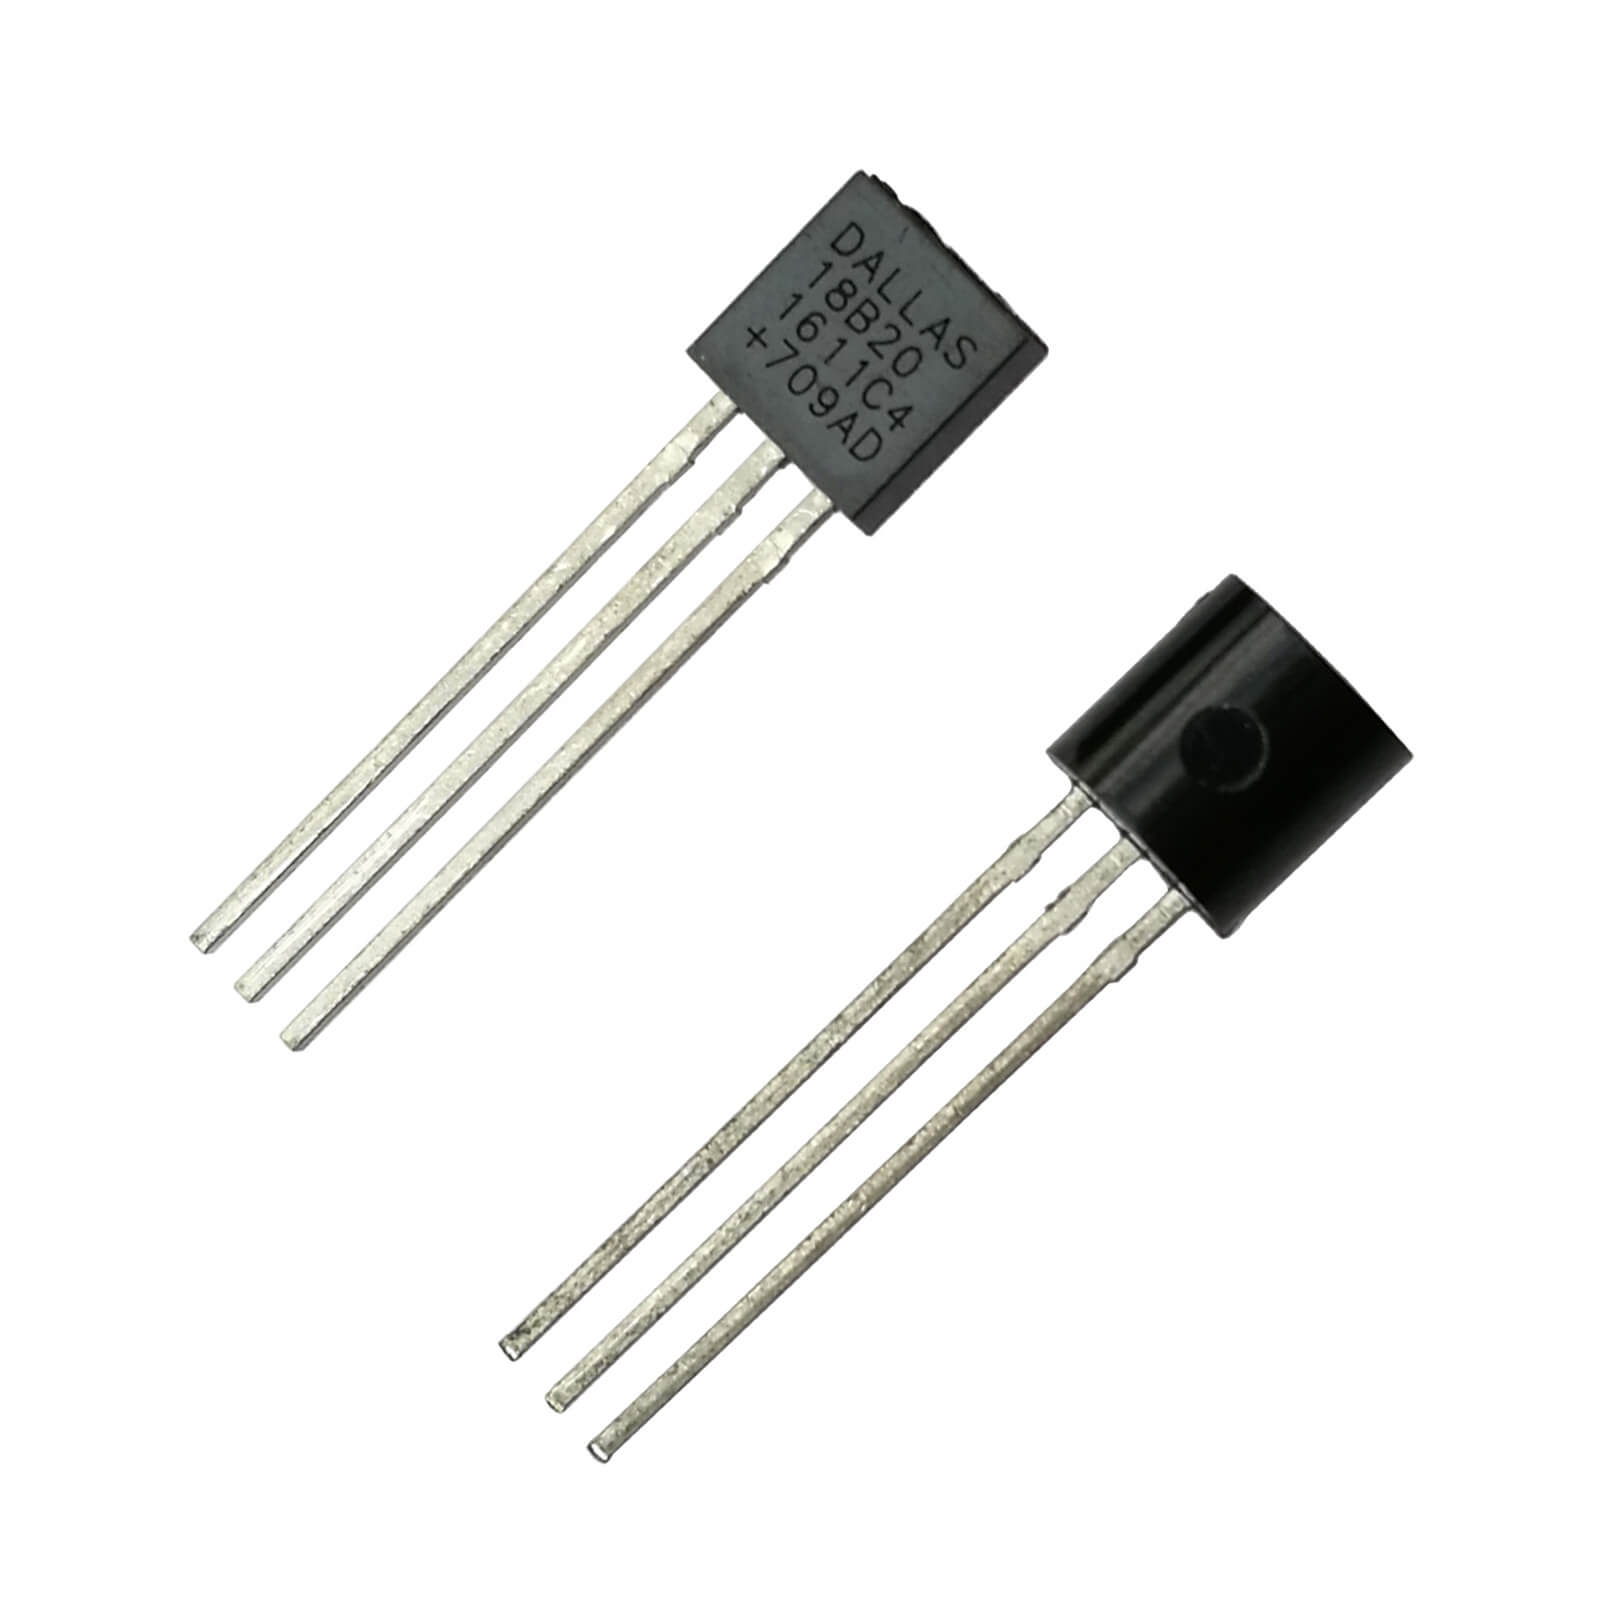 DS18B20+ 1-Wire Digital Temperature Sensor